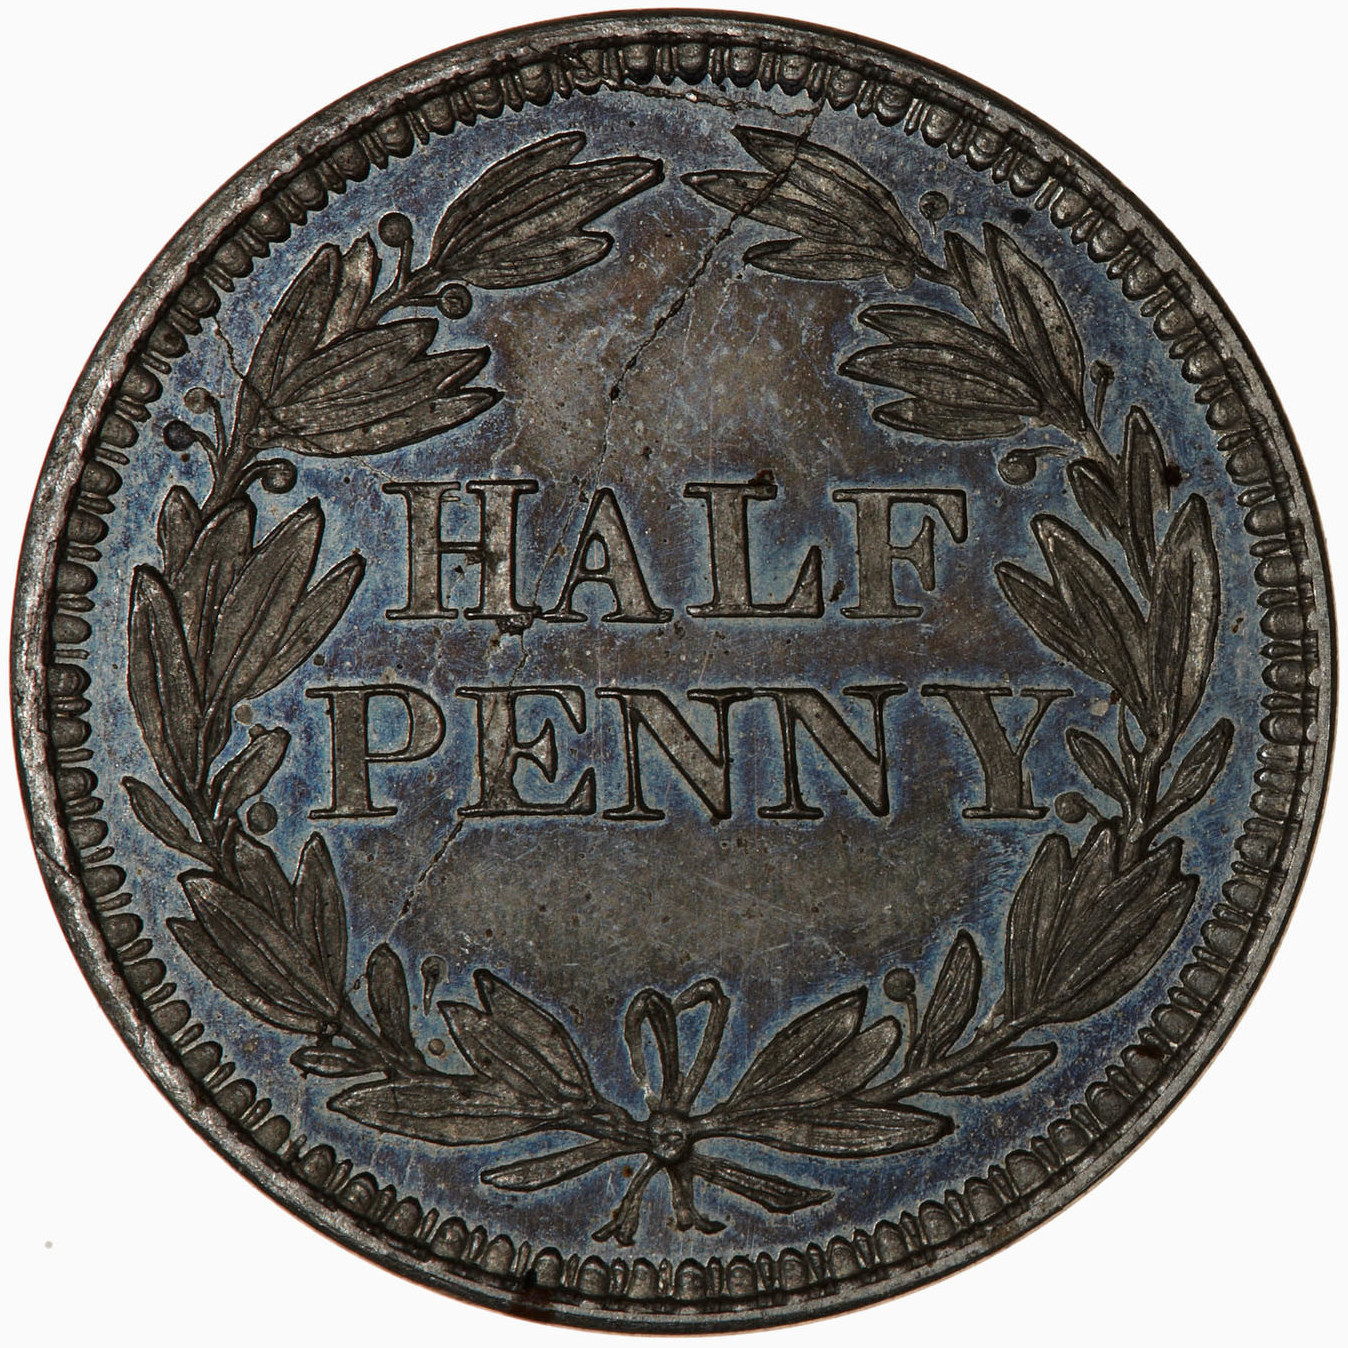 Halfpenny (Pattern): Photo Pattern Coin - Halfpenny, Queen Victoria, Great Britain, circa 1859